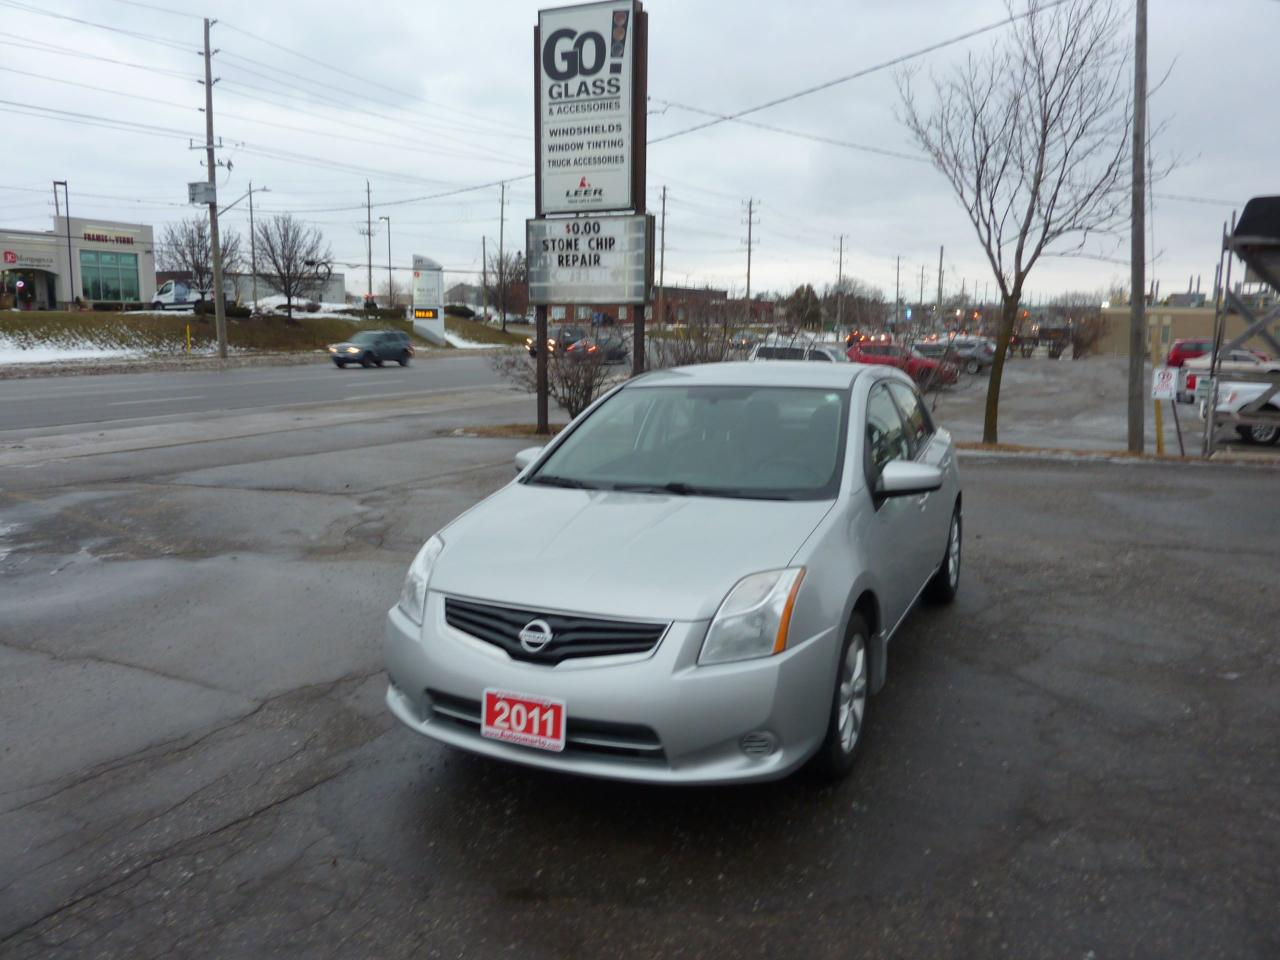 Used 2011 Nissan Sentra 2.0 for Sale in Kitchener, Ontario | Carpages.ca